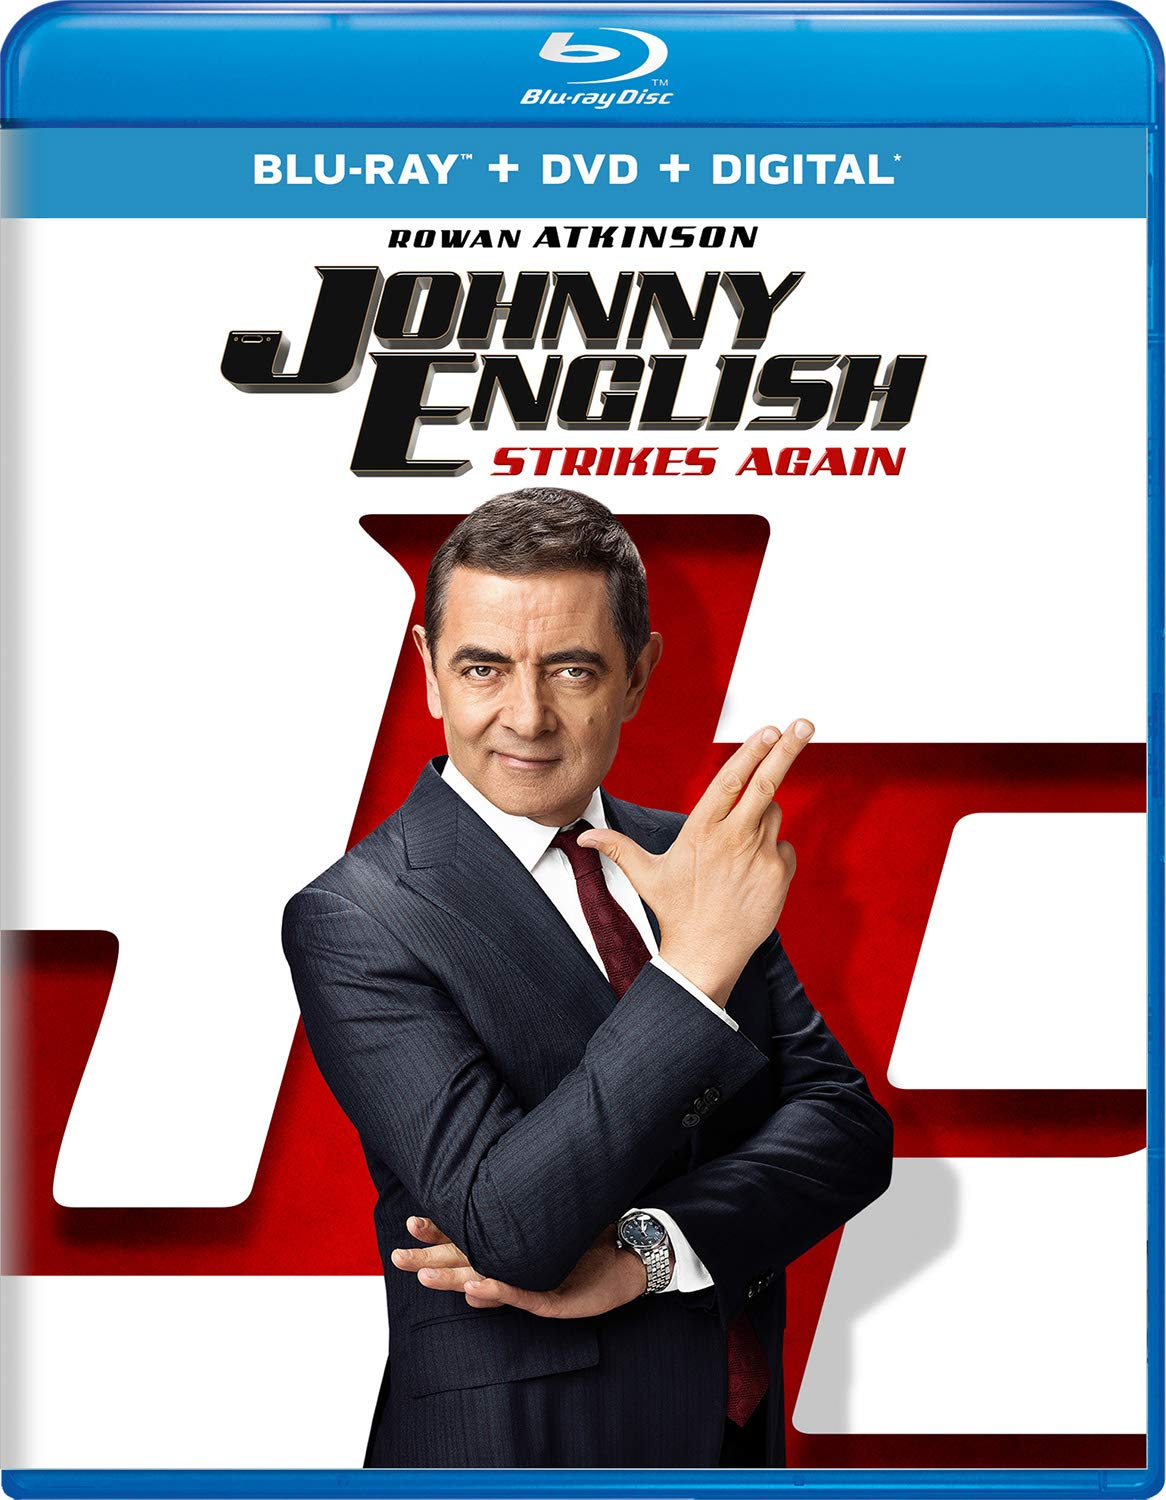 Johnny English [Movie] - Johnny English Strikes Again